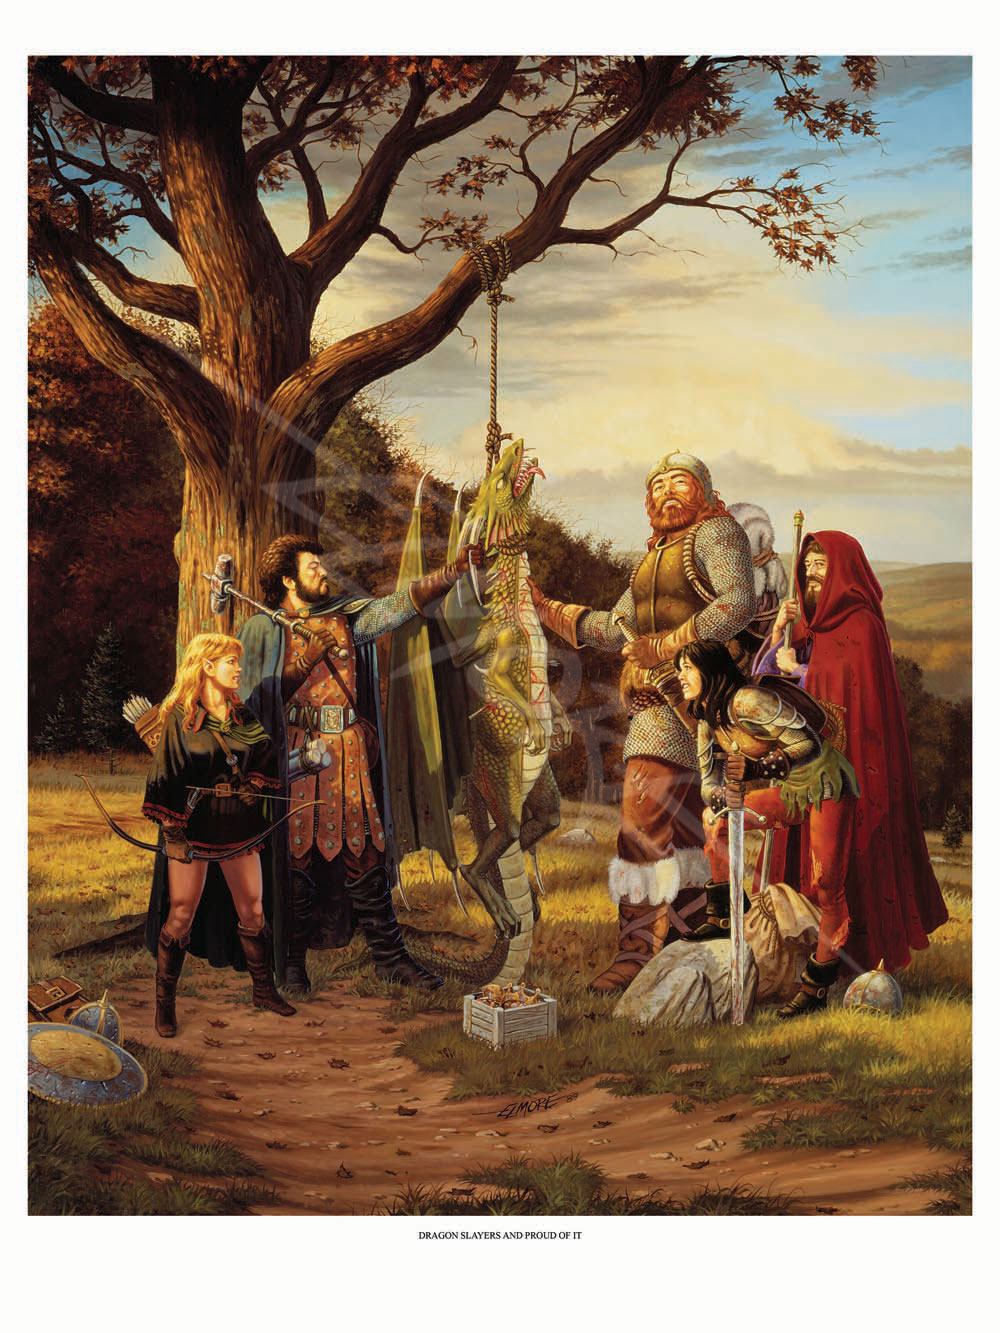 Larry Elmore - Dragon Slayers